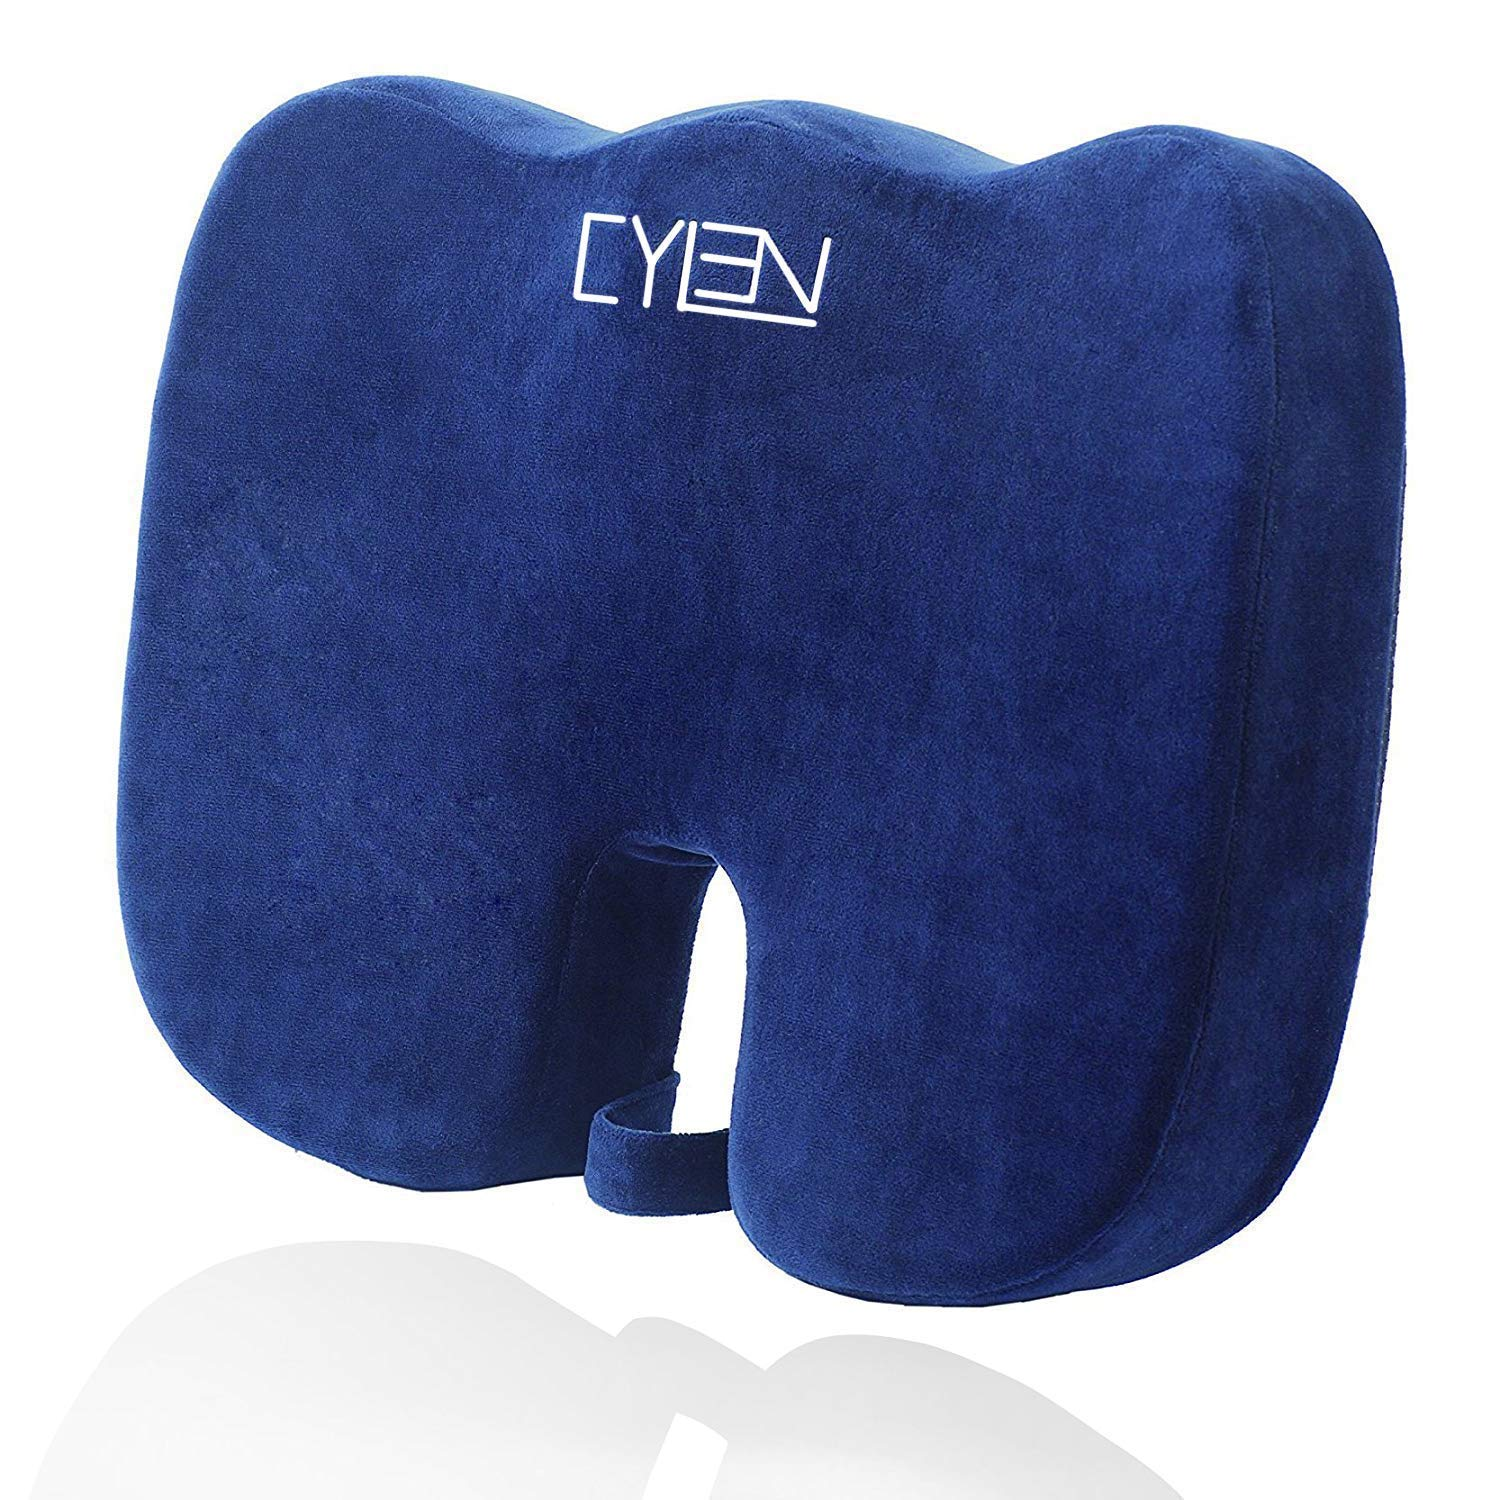 CYLEN Home-Memory Foam Bamboo Charcoal Infused Ventilated Orthopedic Seat Cushion for Car and Wheelchair- Washable & Breathable Cover (Grayish Blue)